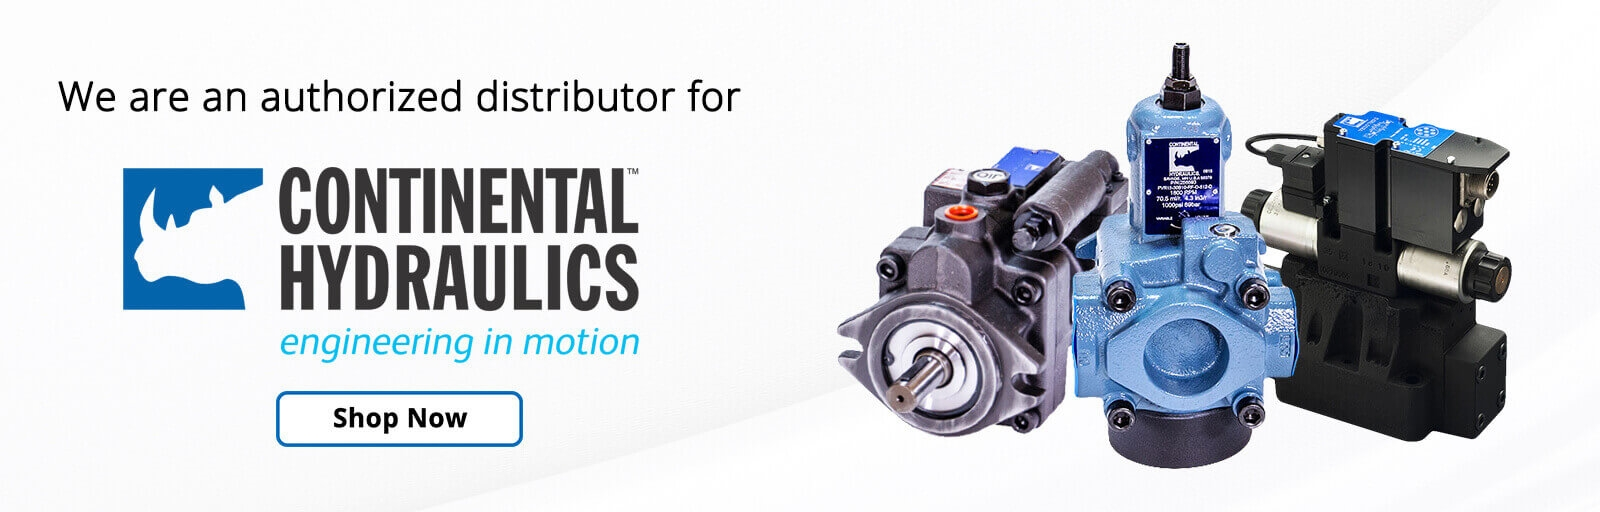 Radwell is a direct distributor for Continental Hydraulics